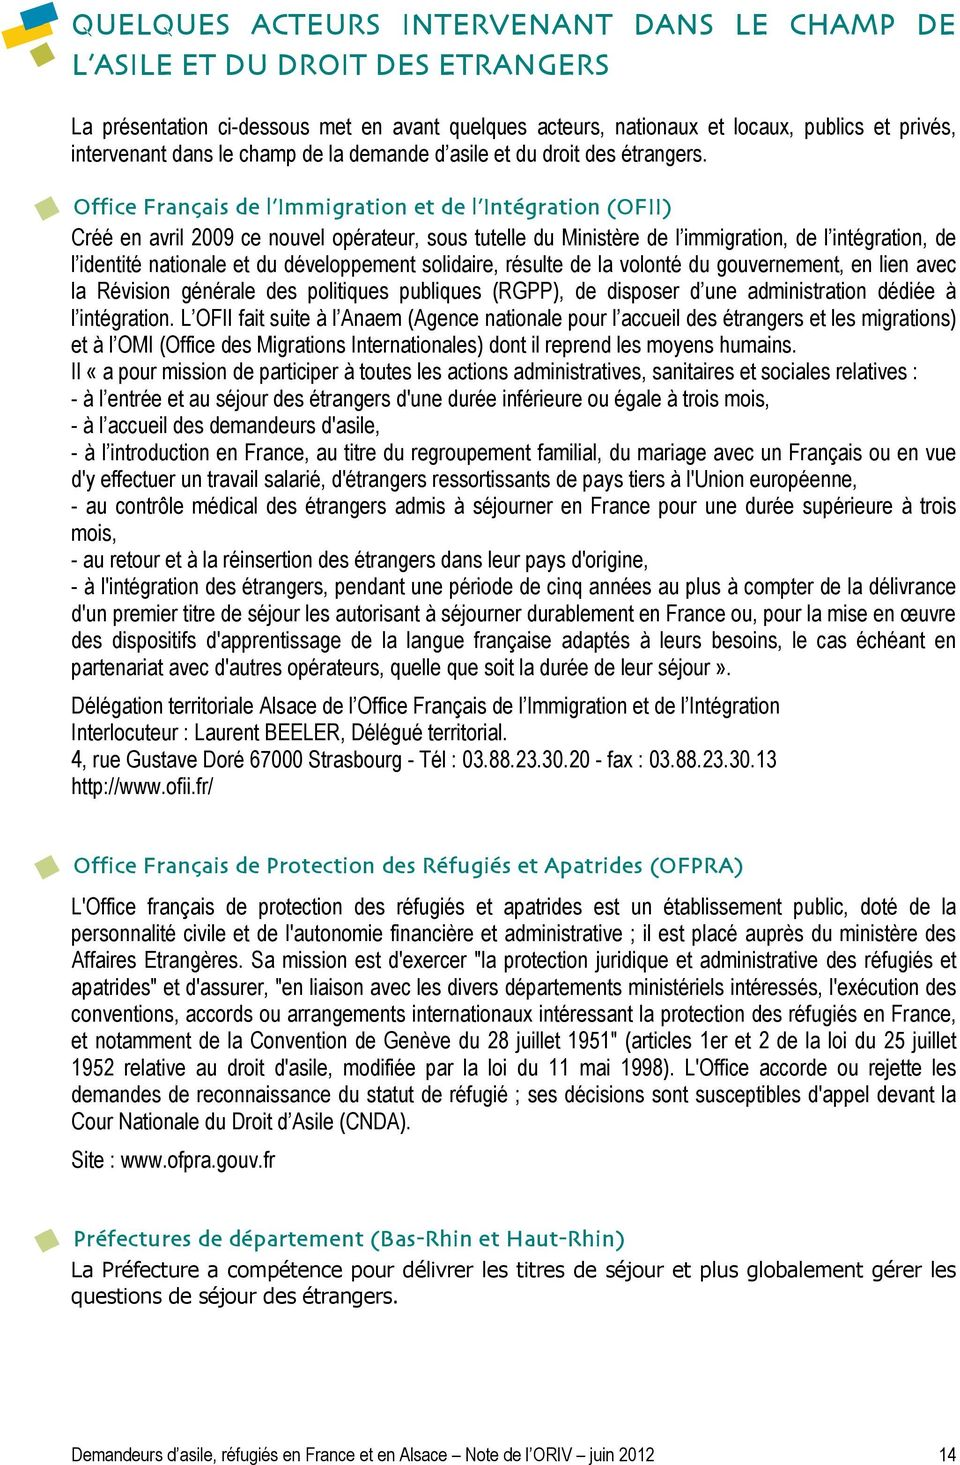 Demandeurs d asile refugies en france et en alsace pdf - Office francaise d immigration et d integration ...